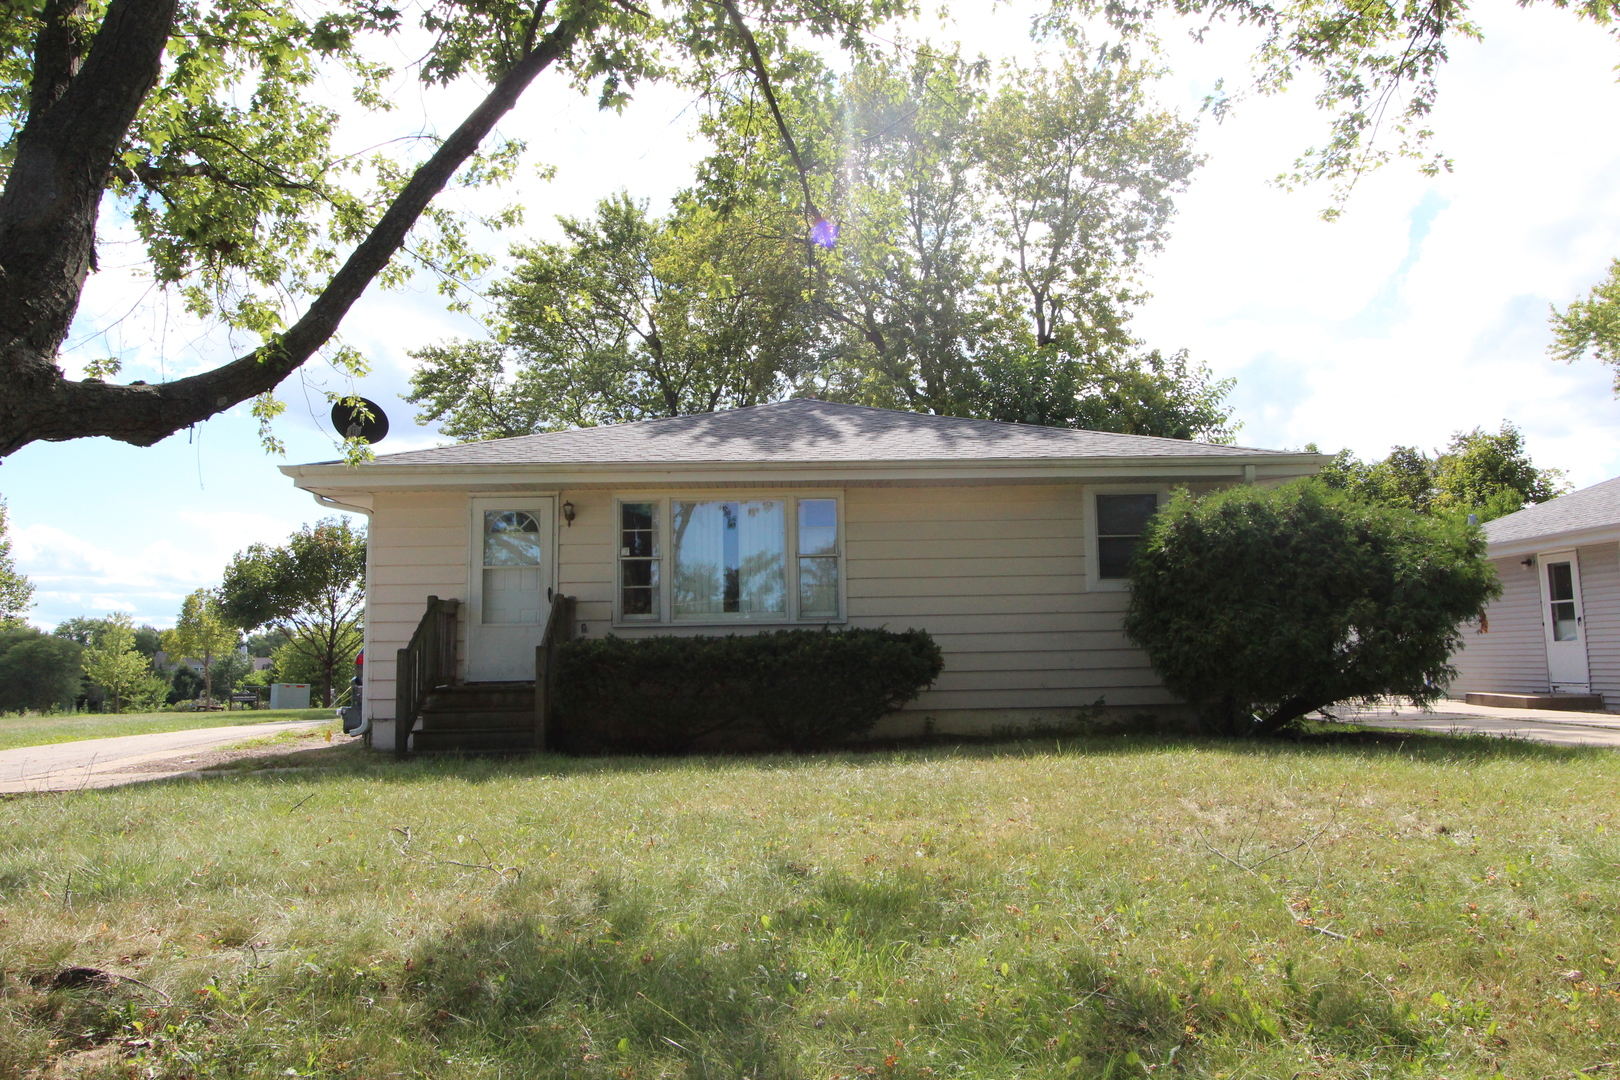 443 S Old Rand Road, Lake Zurich IL 60047